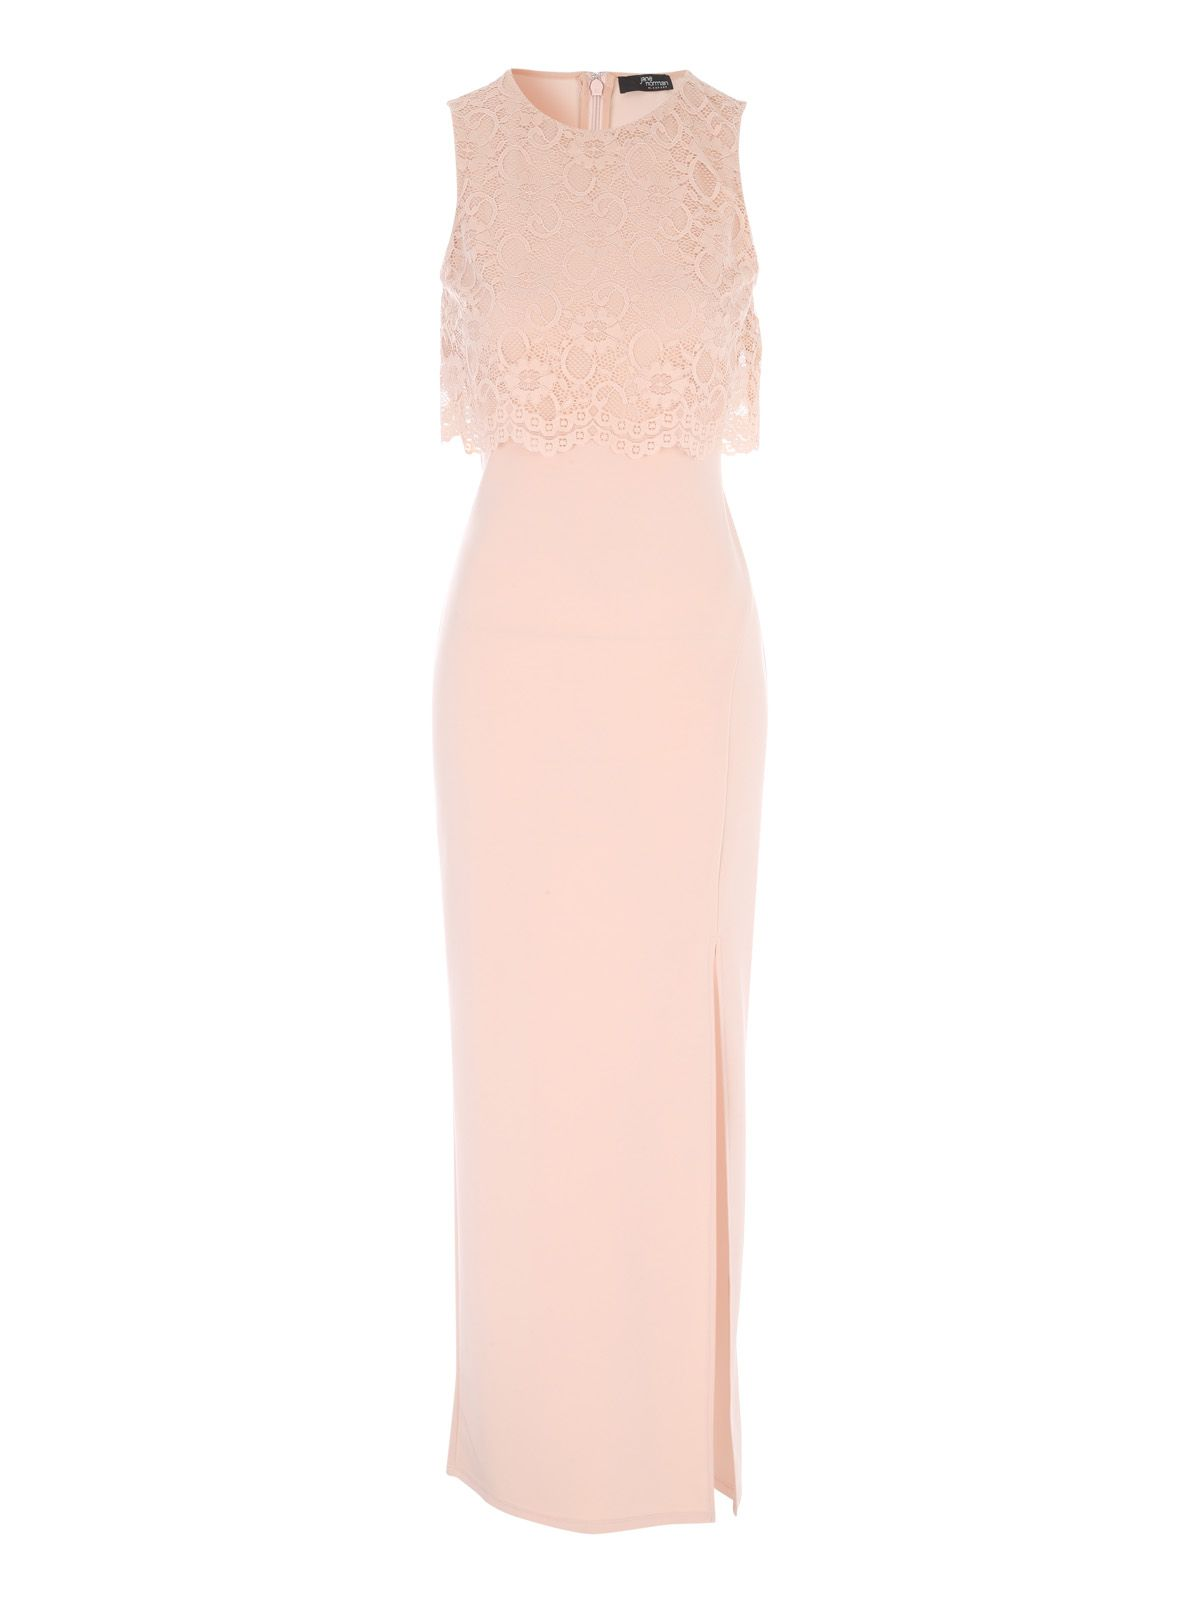 Jane Norman Lace Overlay Maxi Dress, Nude